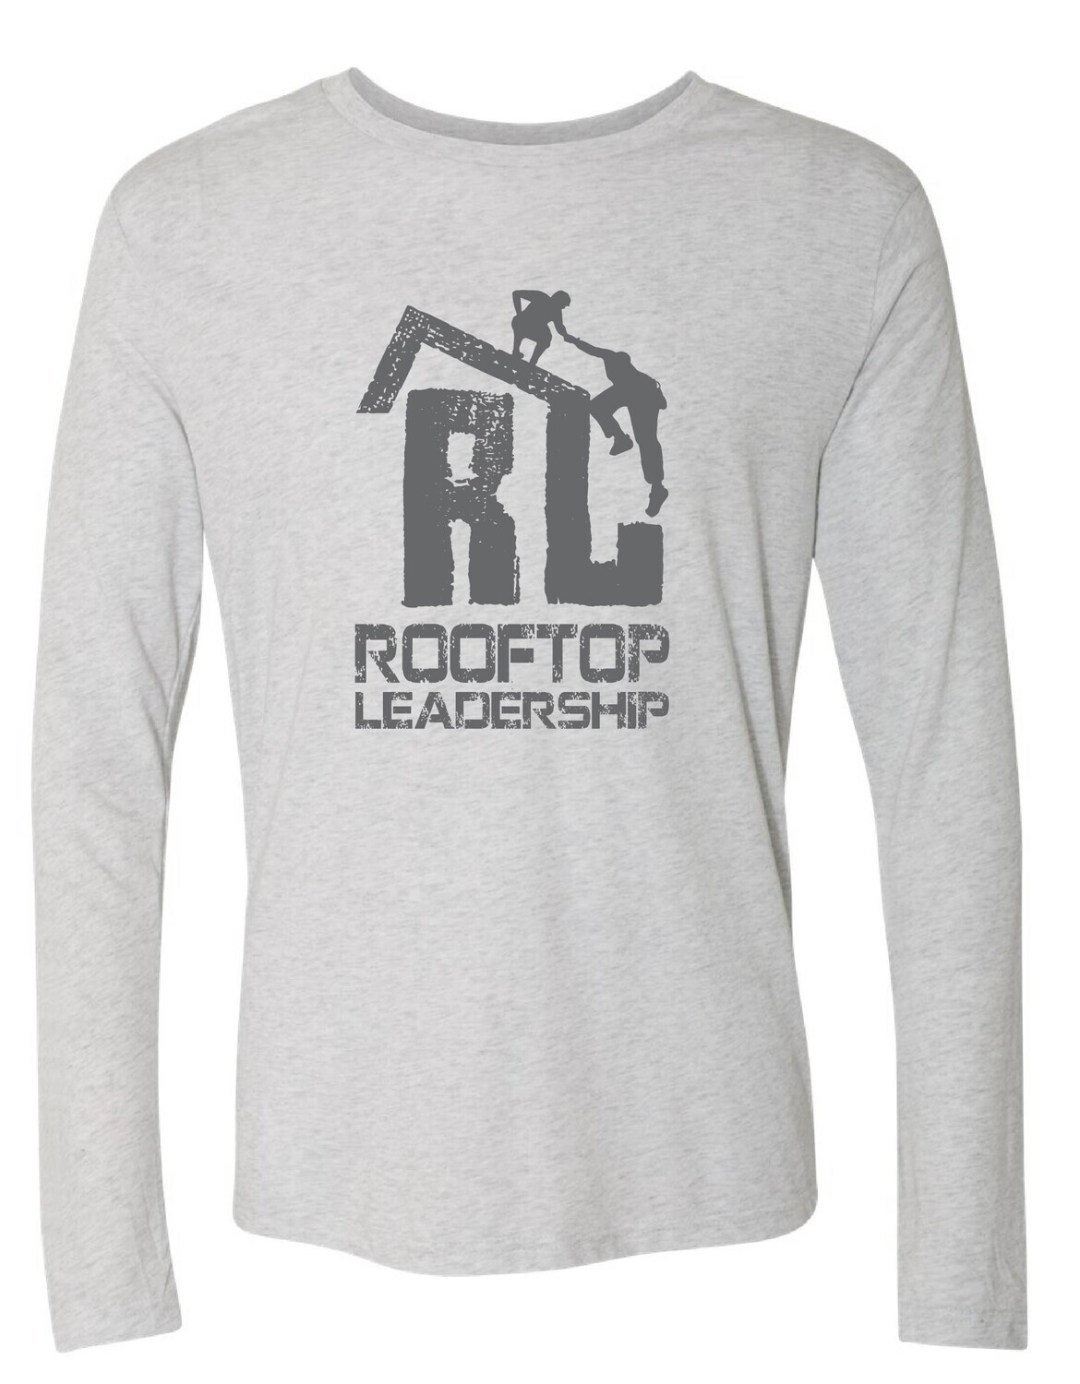 Long Sleeved Rooftop Shirt (Unisex)